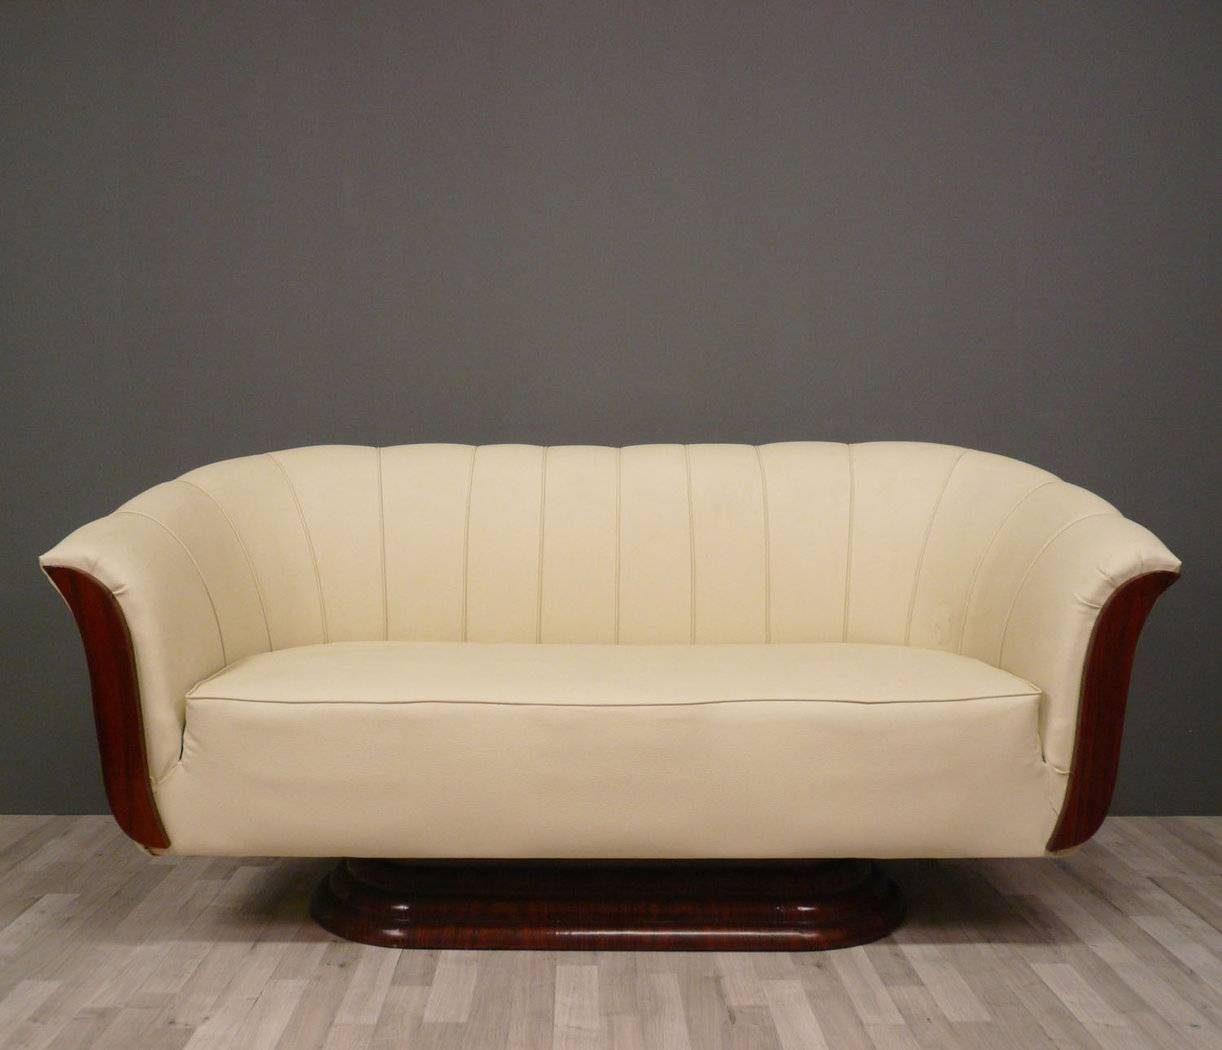 Art Deco Sofa - Art Deco Furniture for Art Deco Sofa and Chairs (Image 5 of 15)